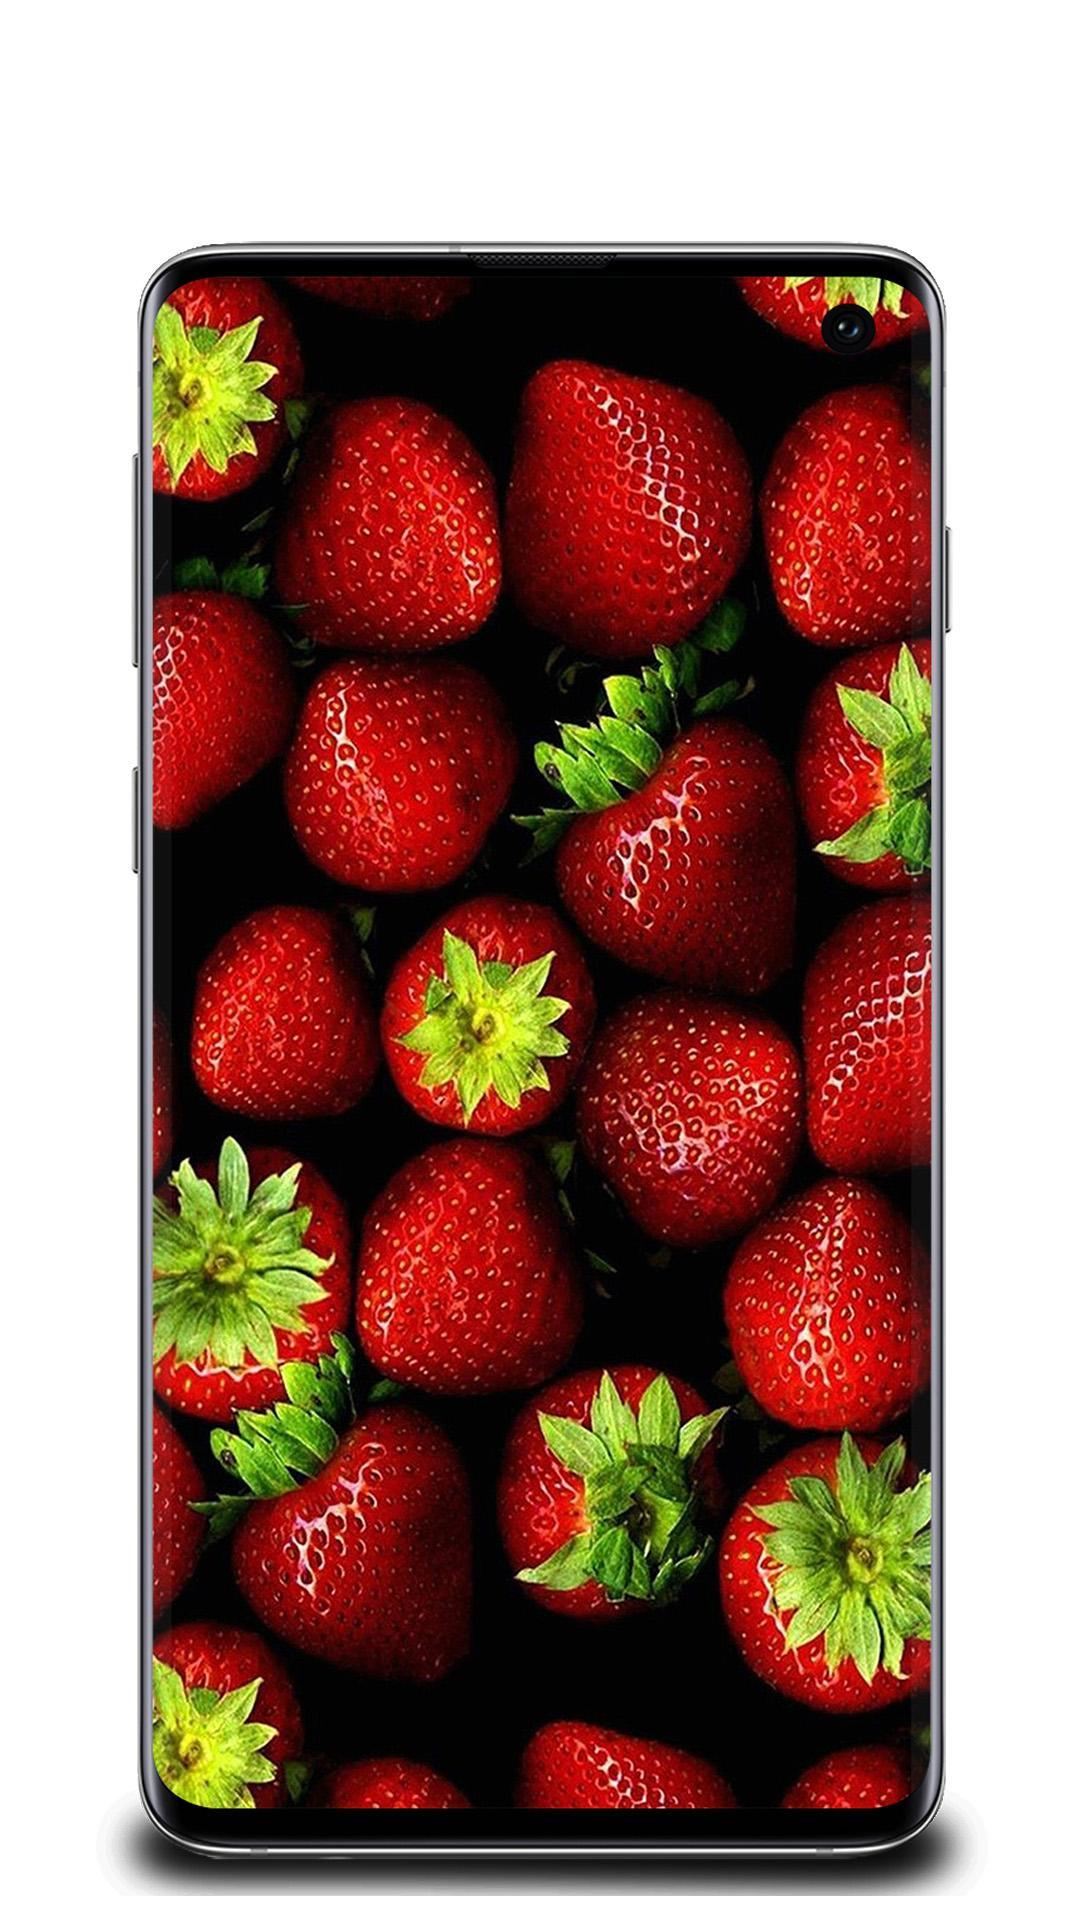 Strawberry Wallpaper Hd For Android Apk Download